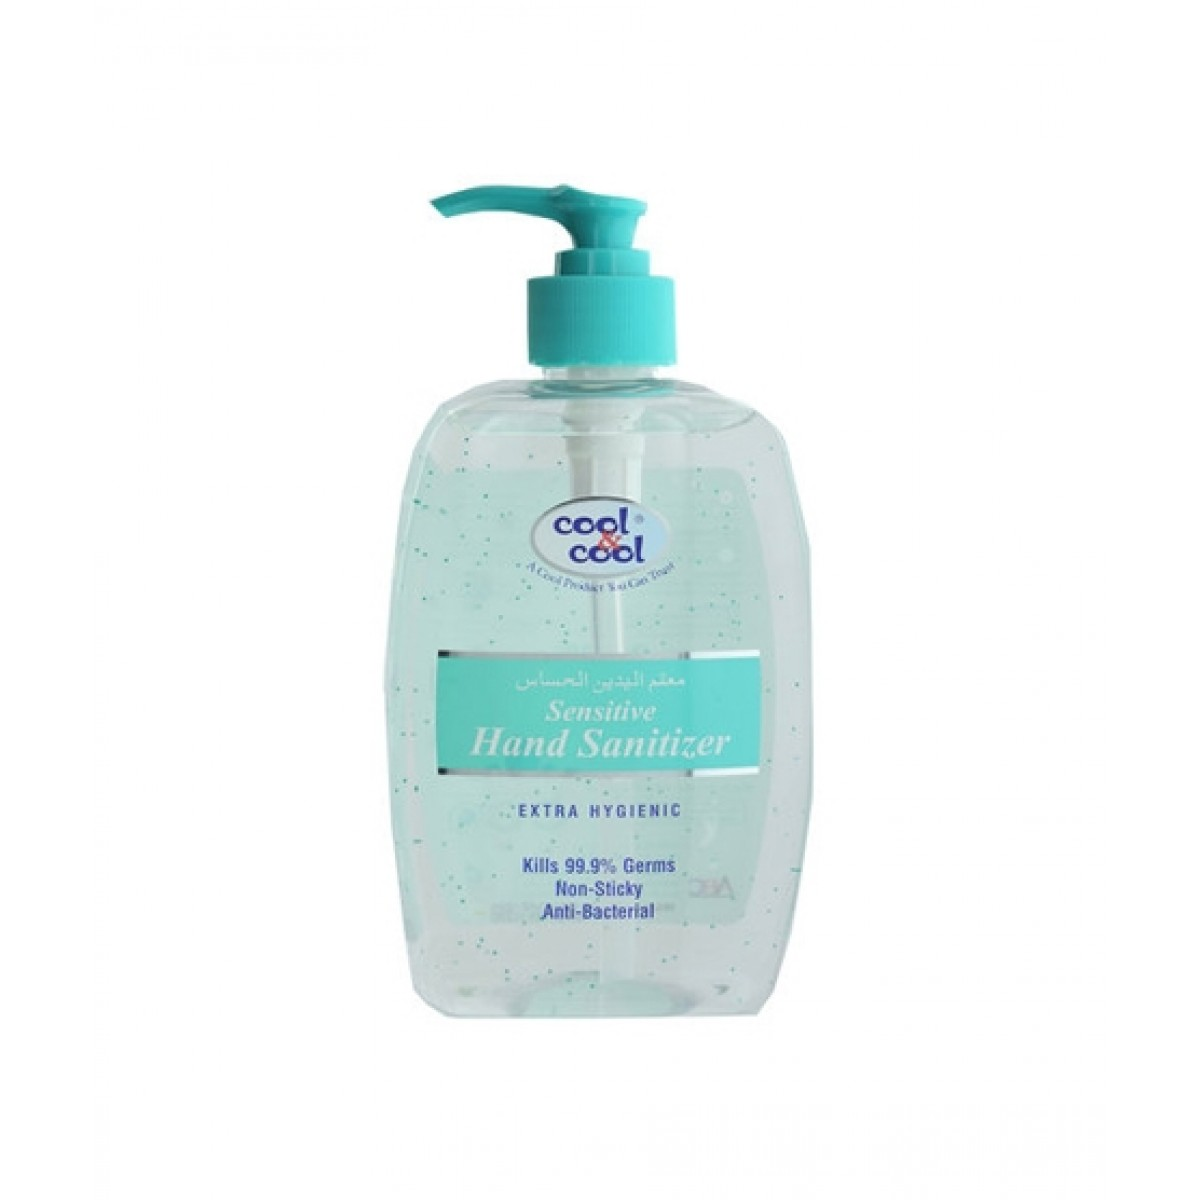 Cool Cool Sensitive Hand Sanitizer Price In Pakistan Buy Cool